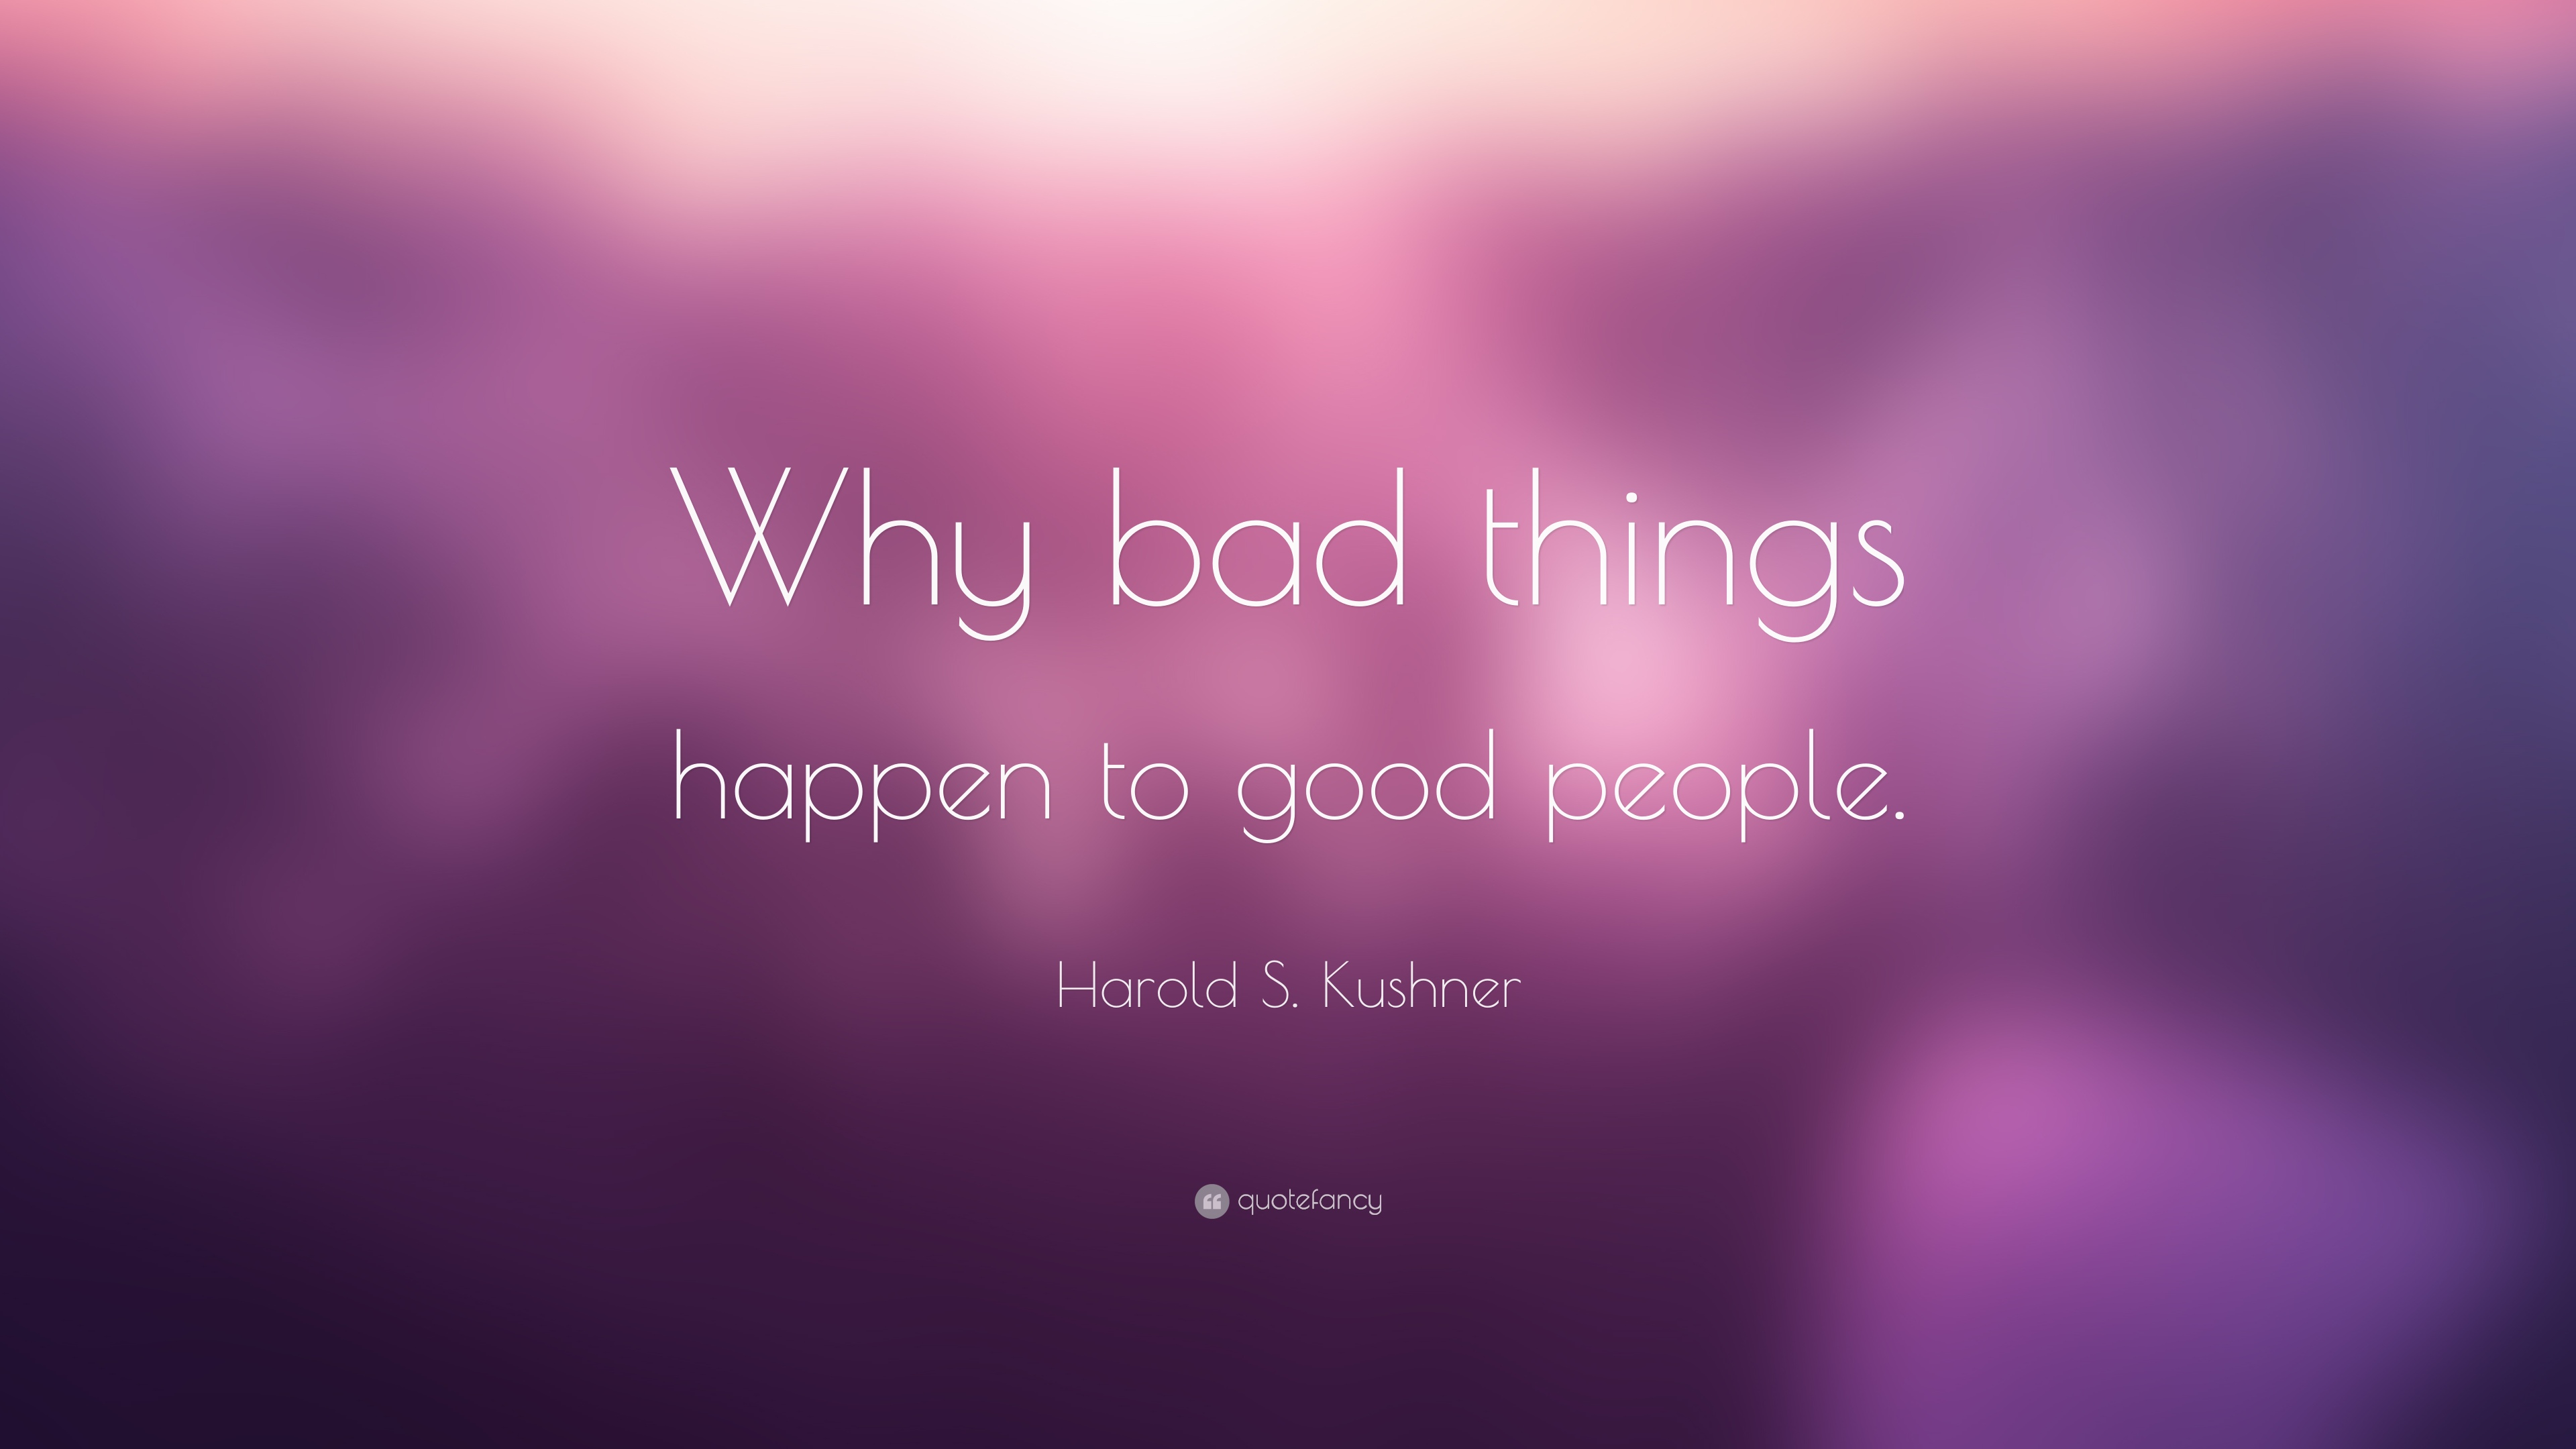 Harold S Kushner Quote Why Bad Things Happen To Good People 10